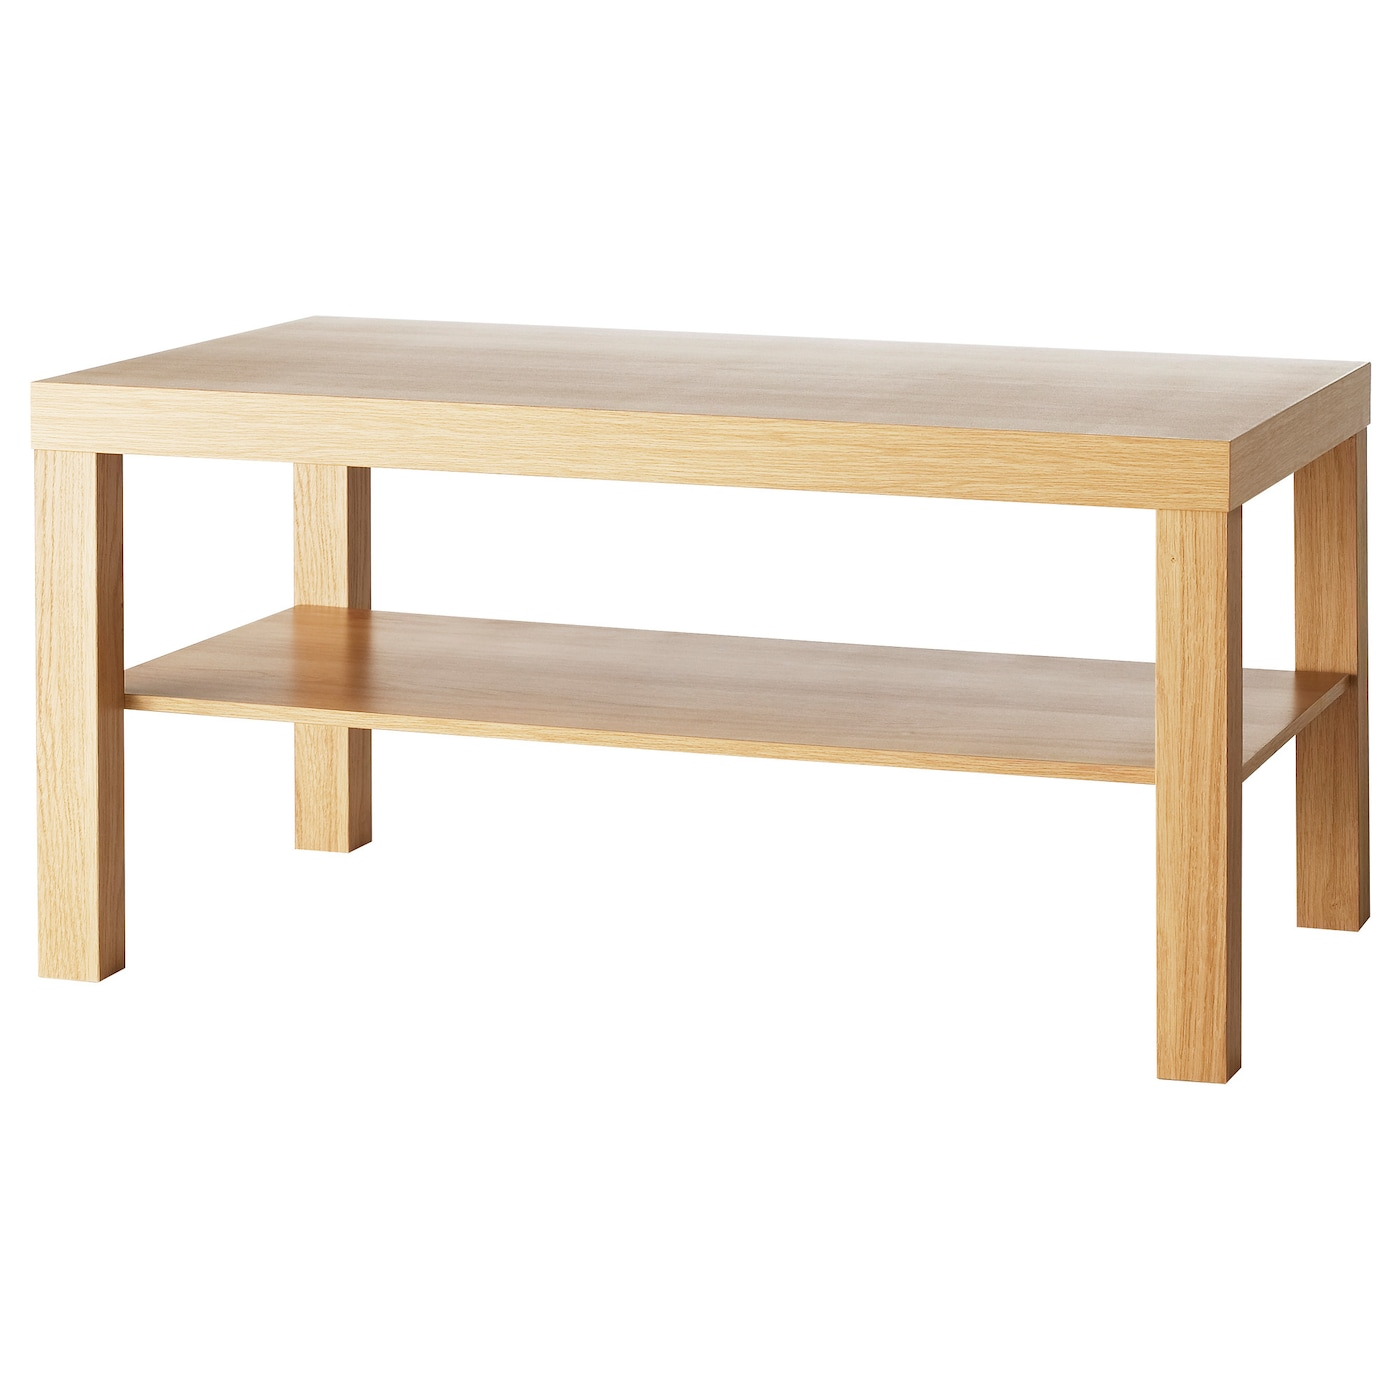 lack coffee table oak effect 90 x 55 cm ikea. Black Bedroom Furniture Sets. Home Design Ideas